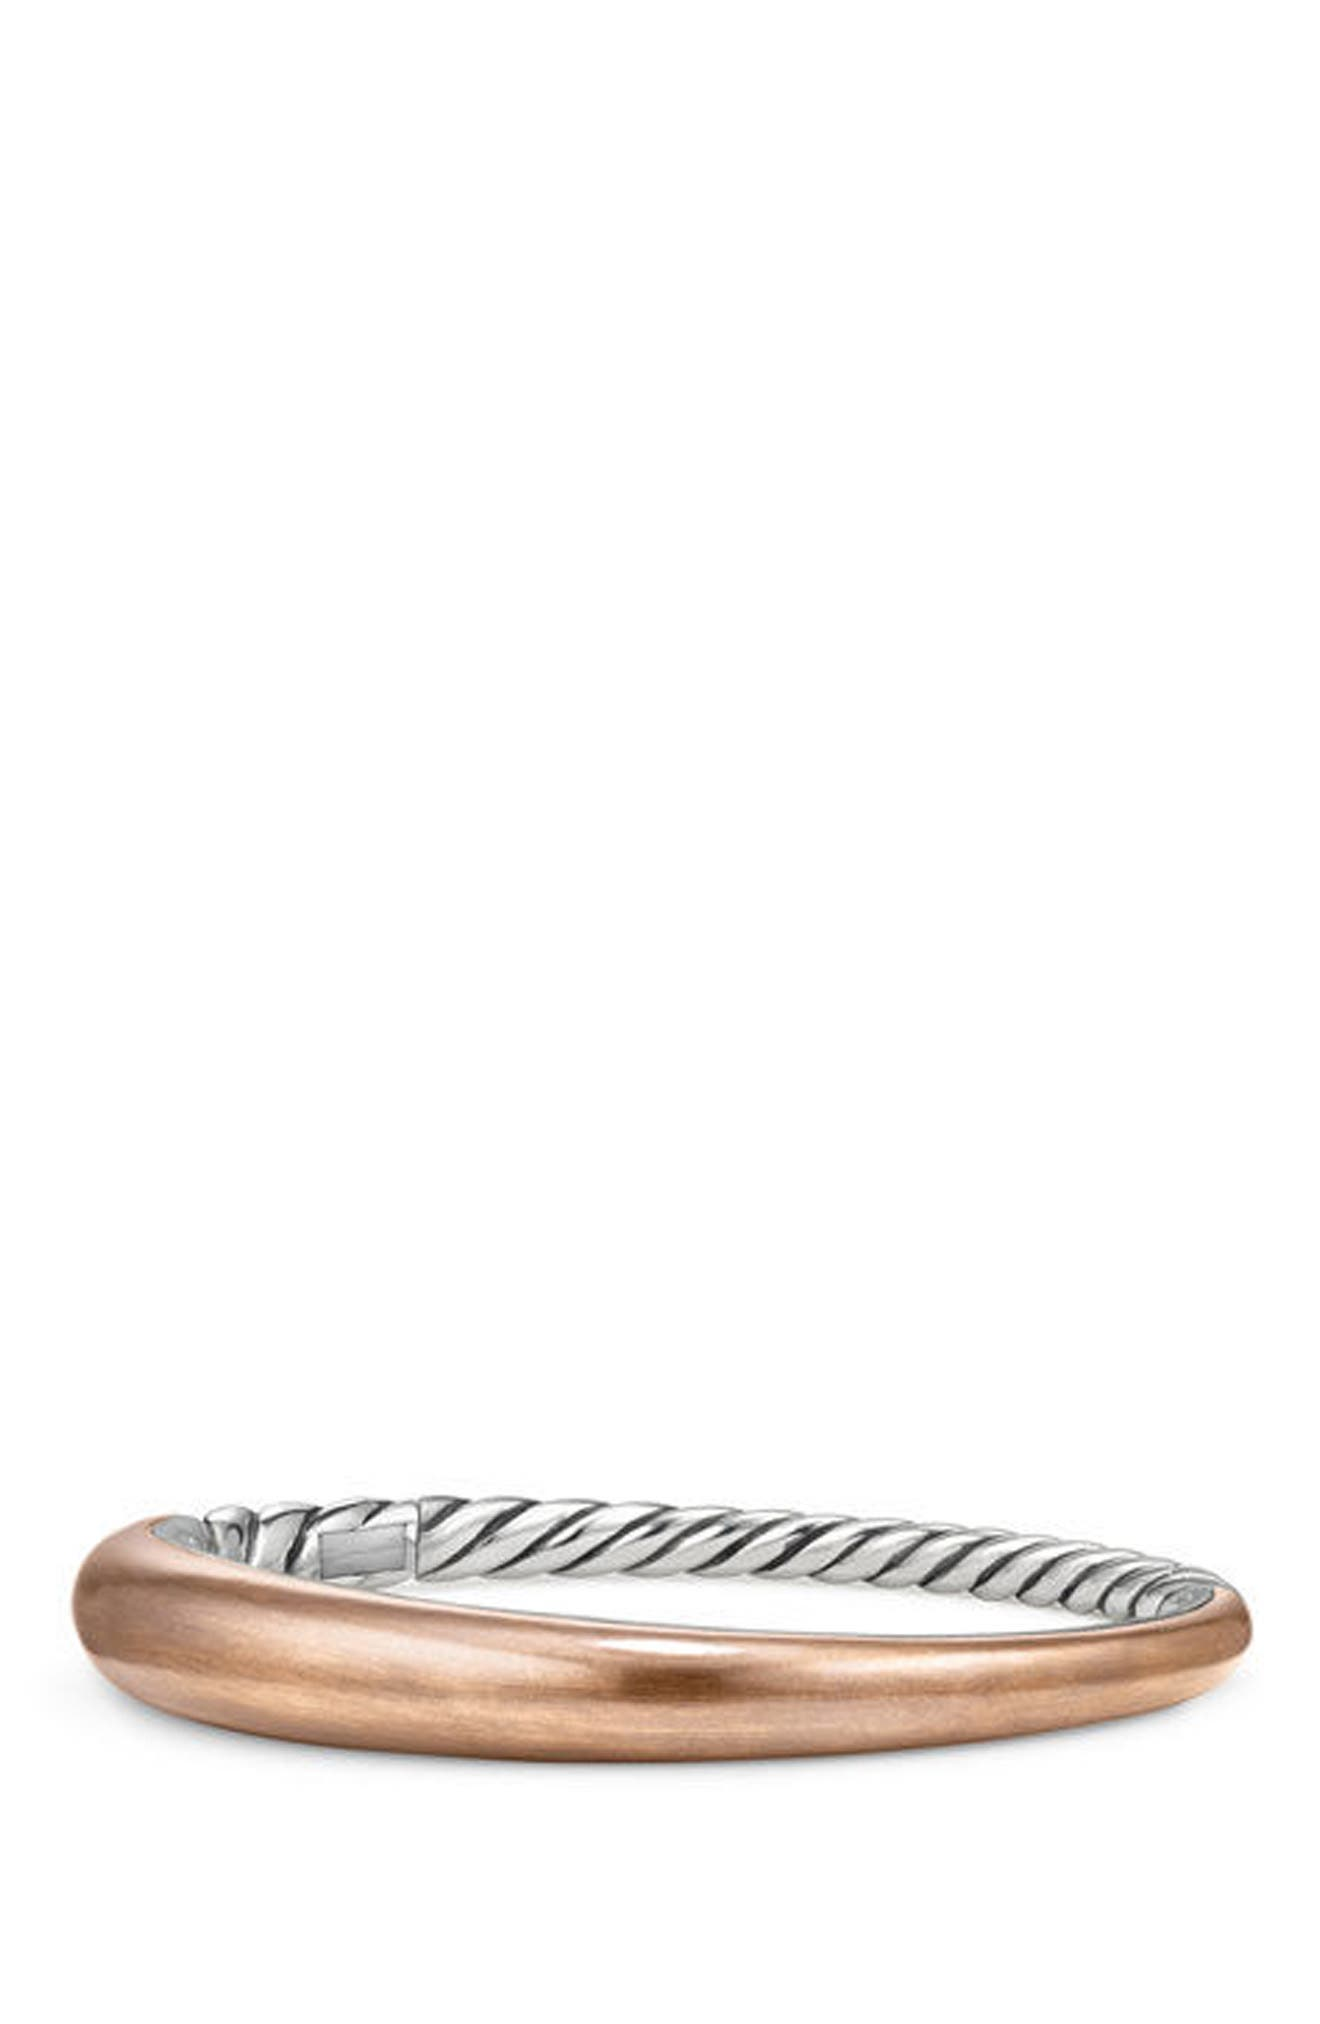 DAVID YURMAN, Pure Form Mixed Metal Smooth Bracelet with Diamonds, Bronze and Silver, 9.5mm, Main thumbnail 1, color, SILVER